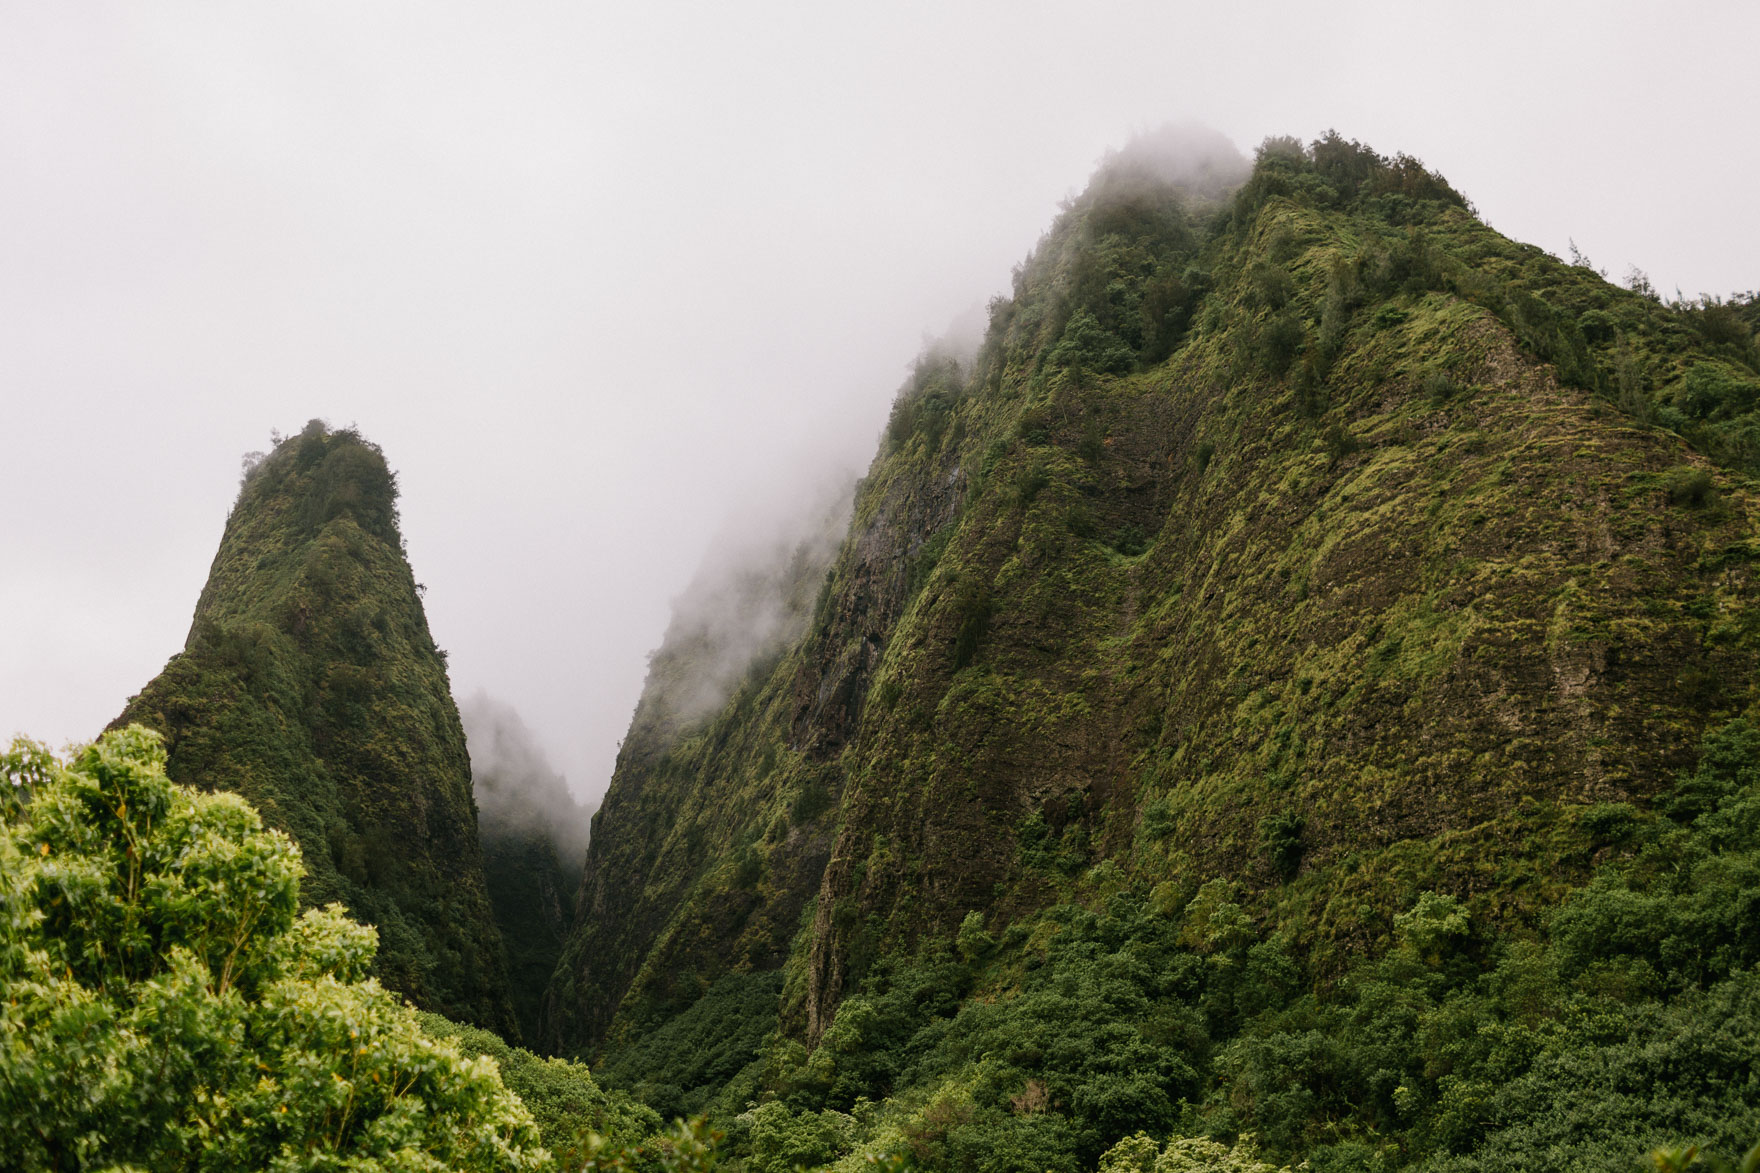 Misty Maui Travel Adventures – Photo by Let's Frolic Together